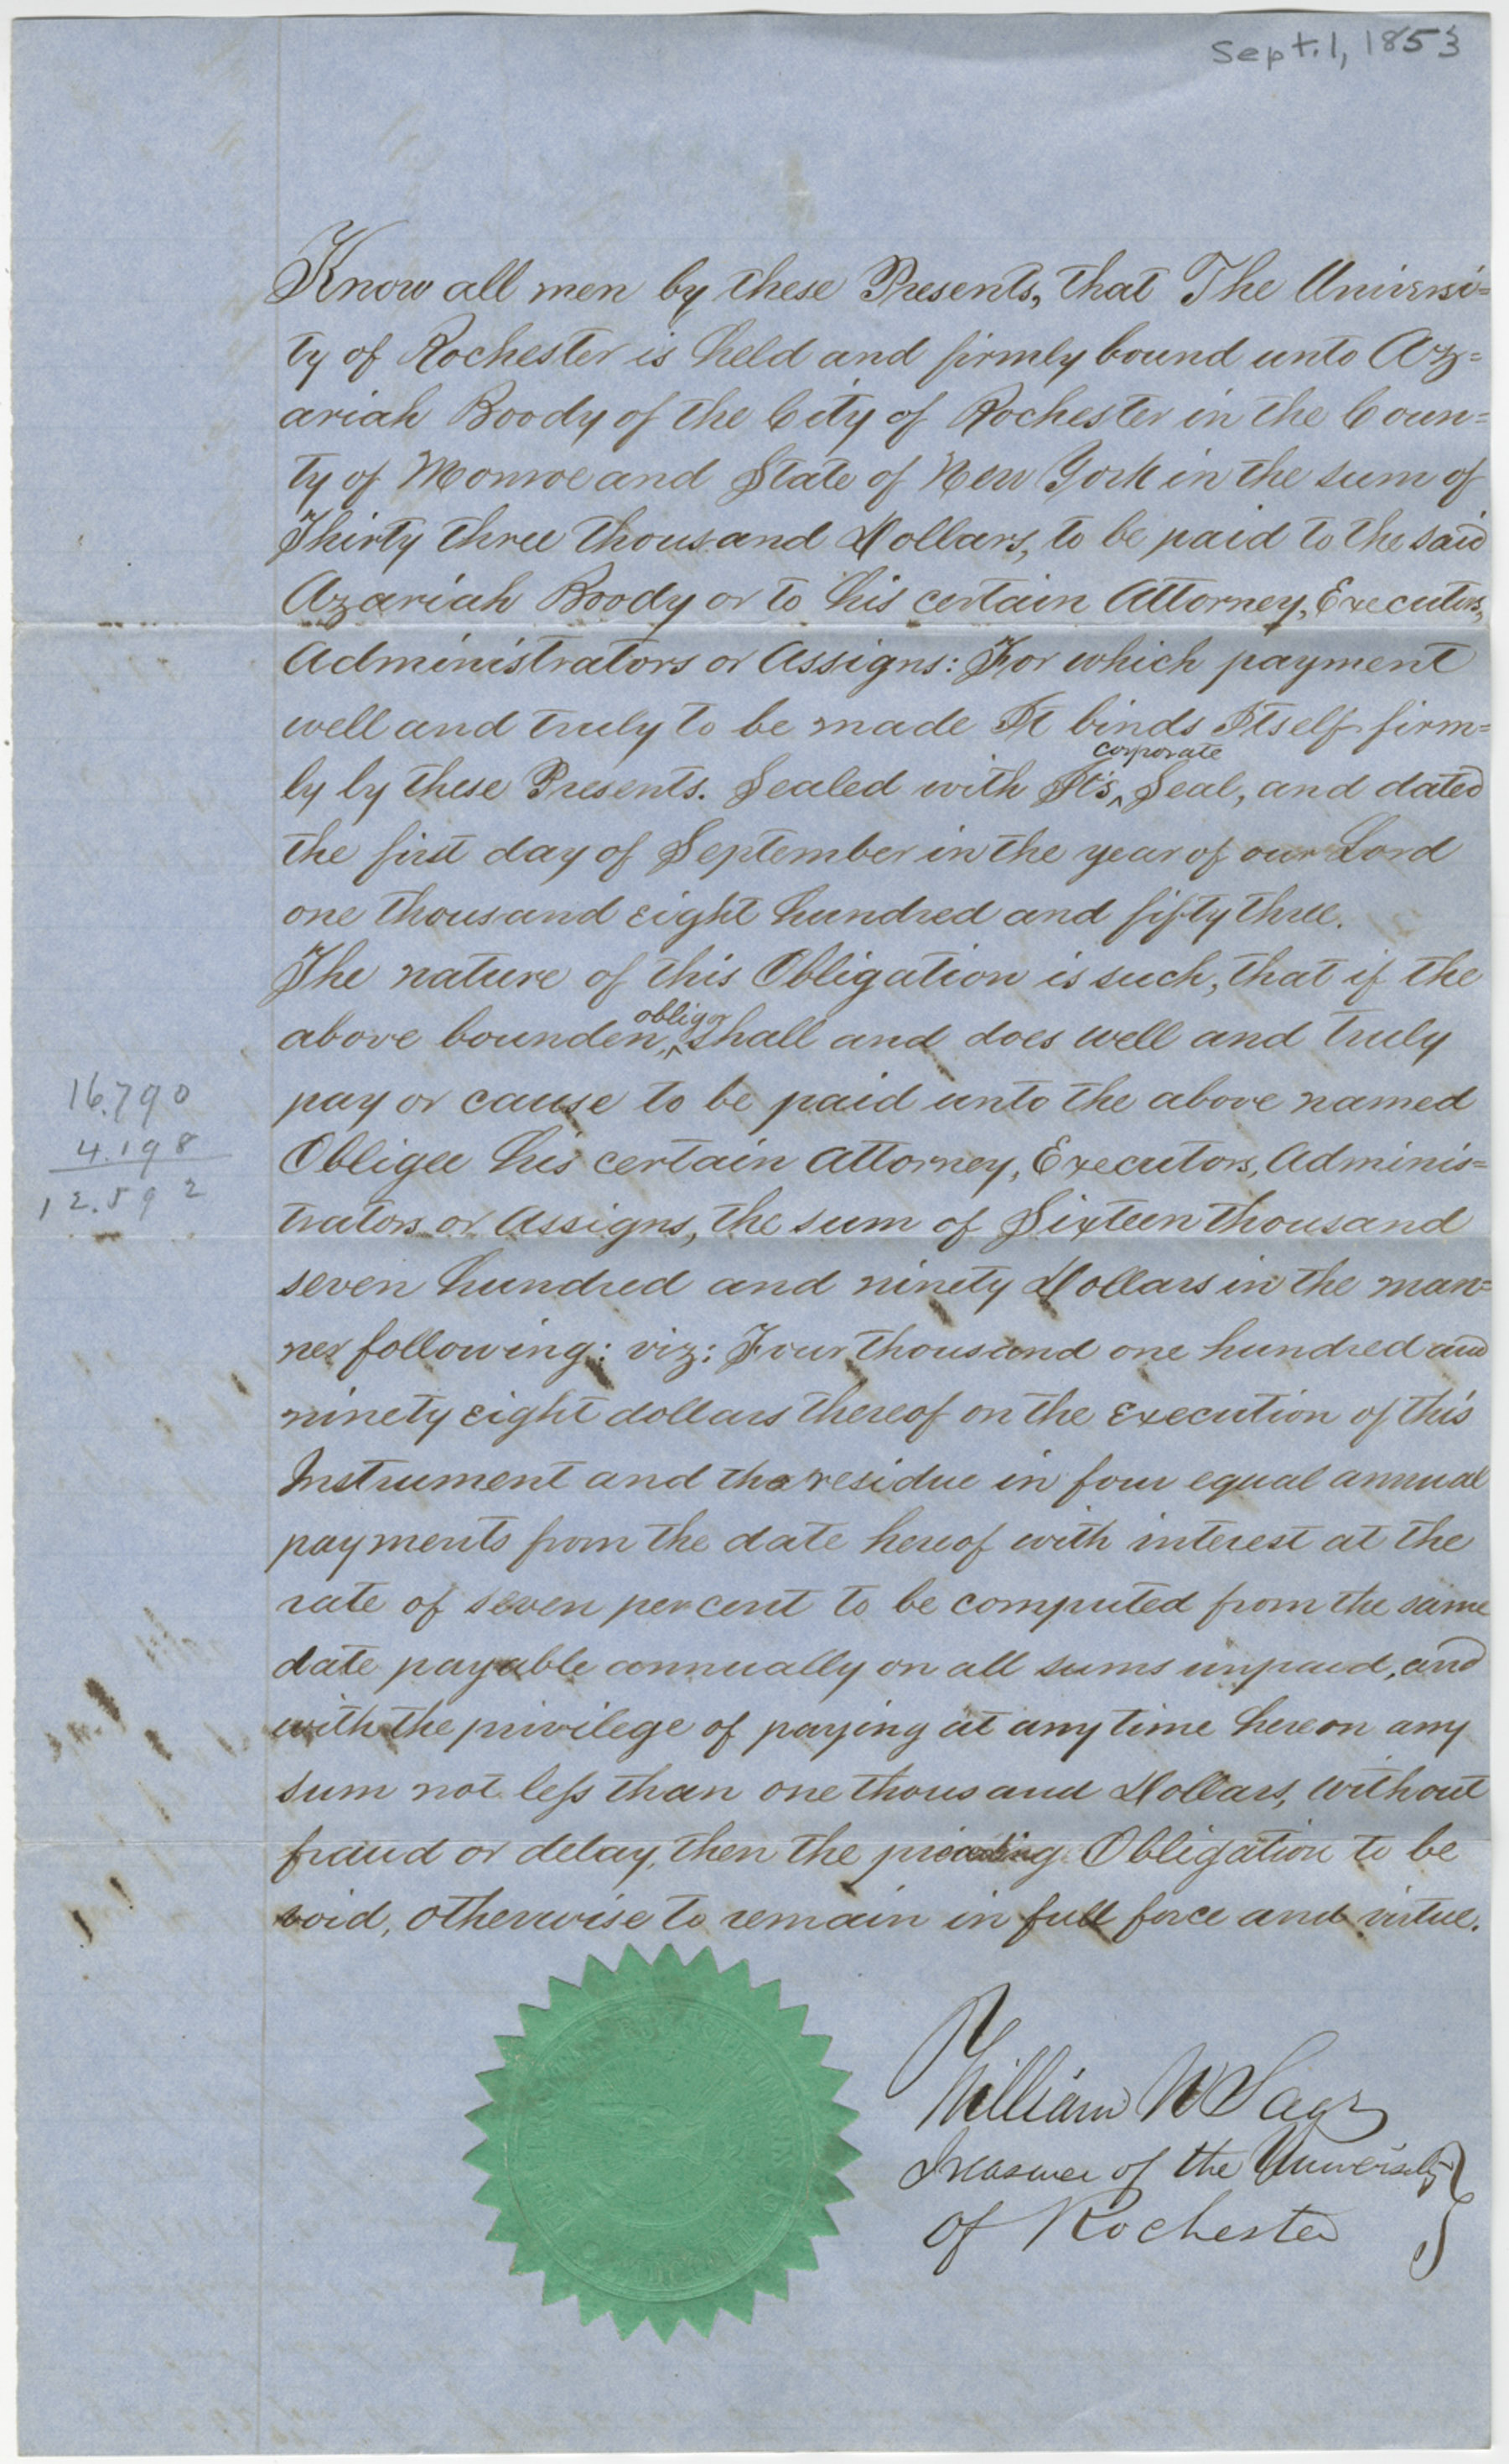 Boody agreement (September 1, 1853)